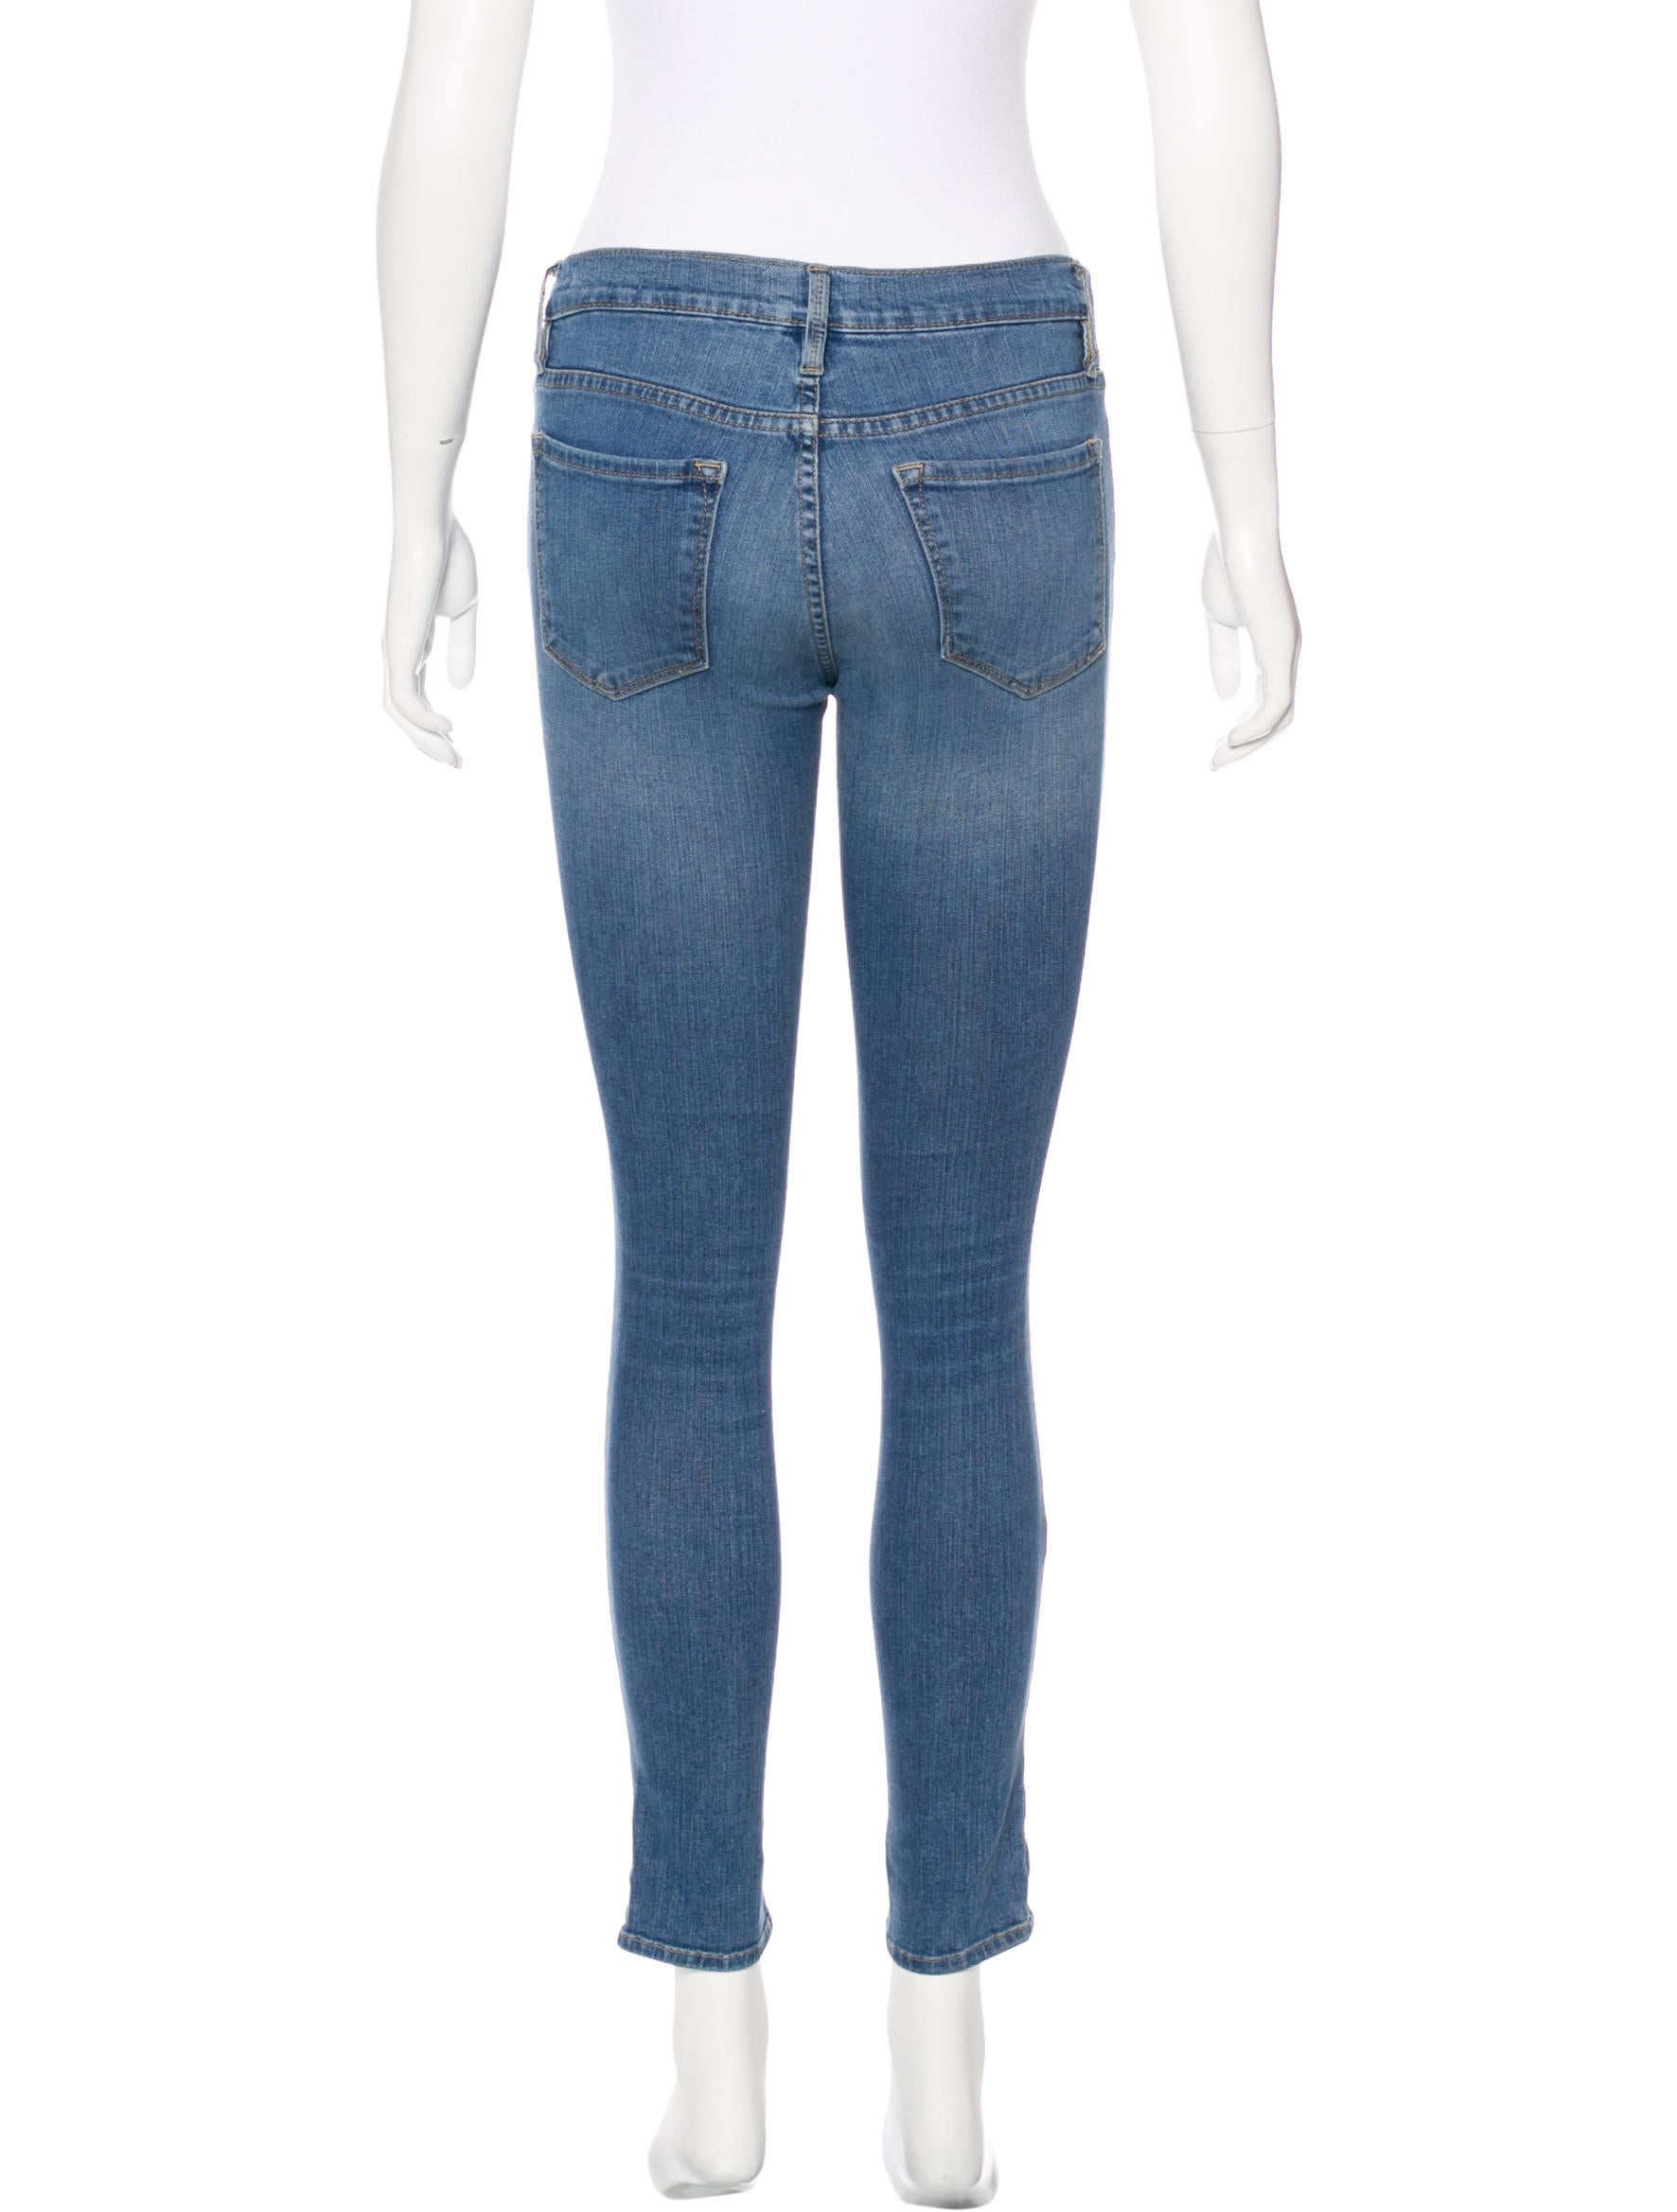 Women's Low Rise Jeans At Buckle, you can find quality and style from any of our jeans, including our low rise jeans for women. Brands like Miss Me, BKE, Rock Revival and more offer a variety of styles, colors, and washes to help you find the perfect pair of women's low rise jeans.